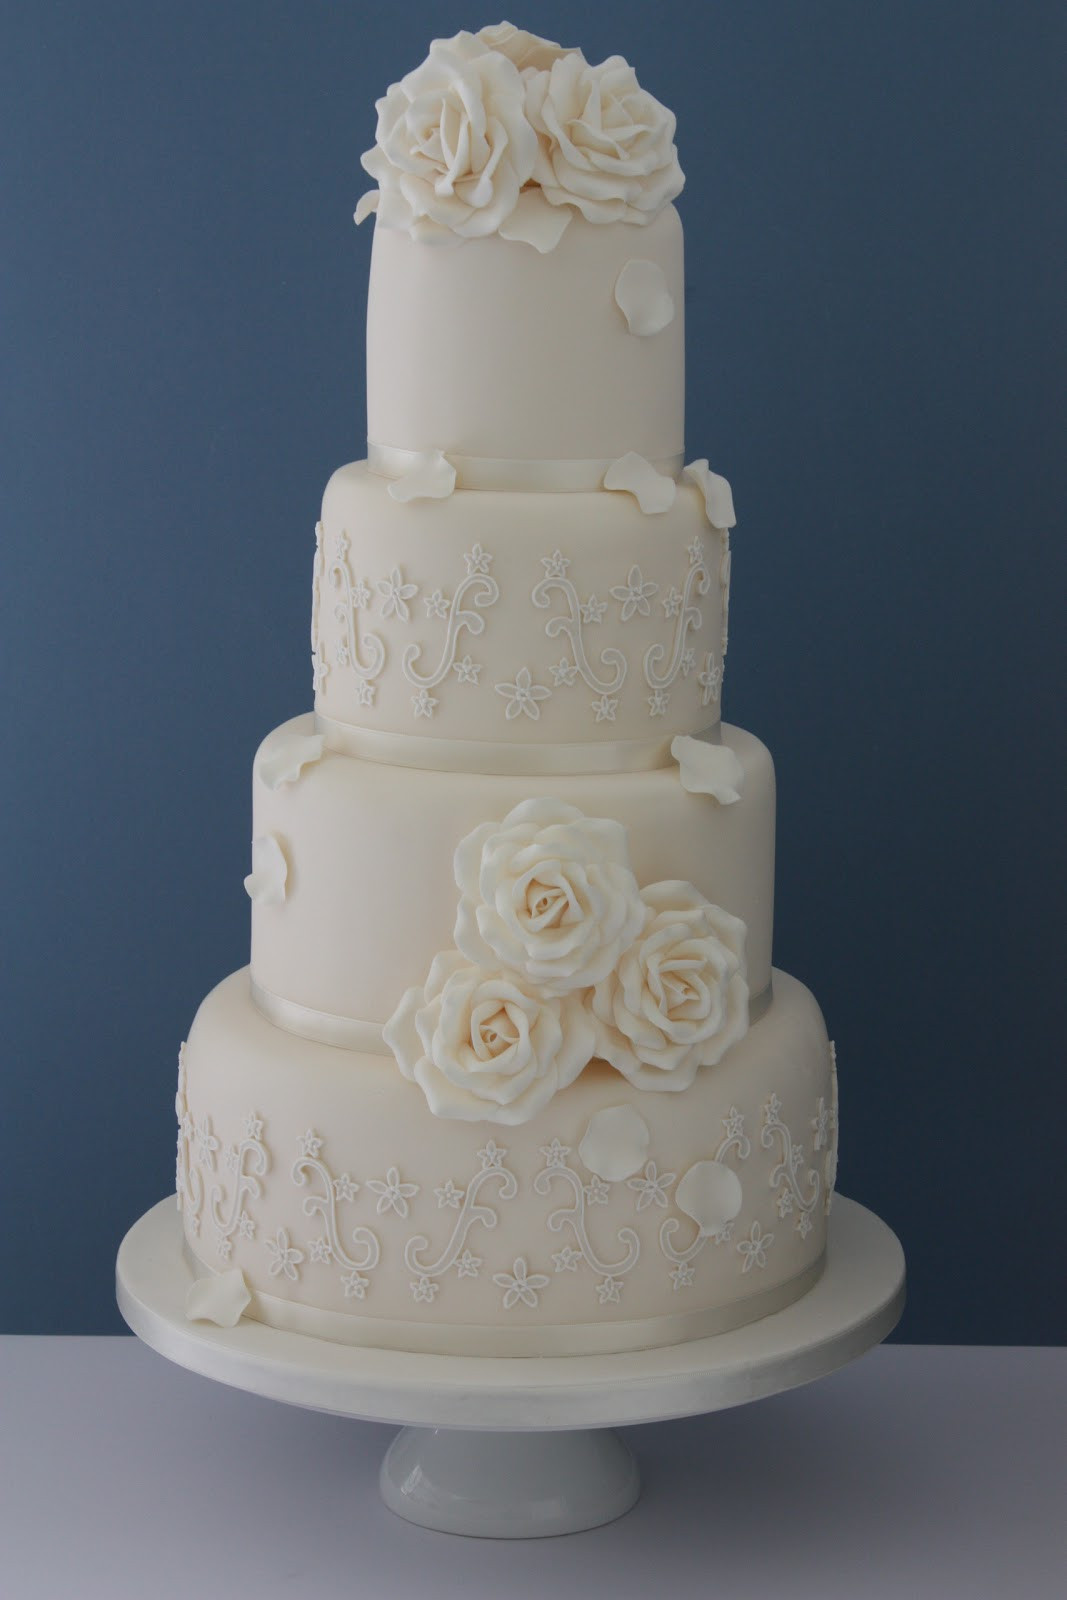 Wedding Cakes Lace  Tiers & Tiaras Ivory Roses & Piped Lace Wedding Cake